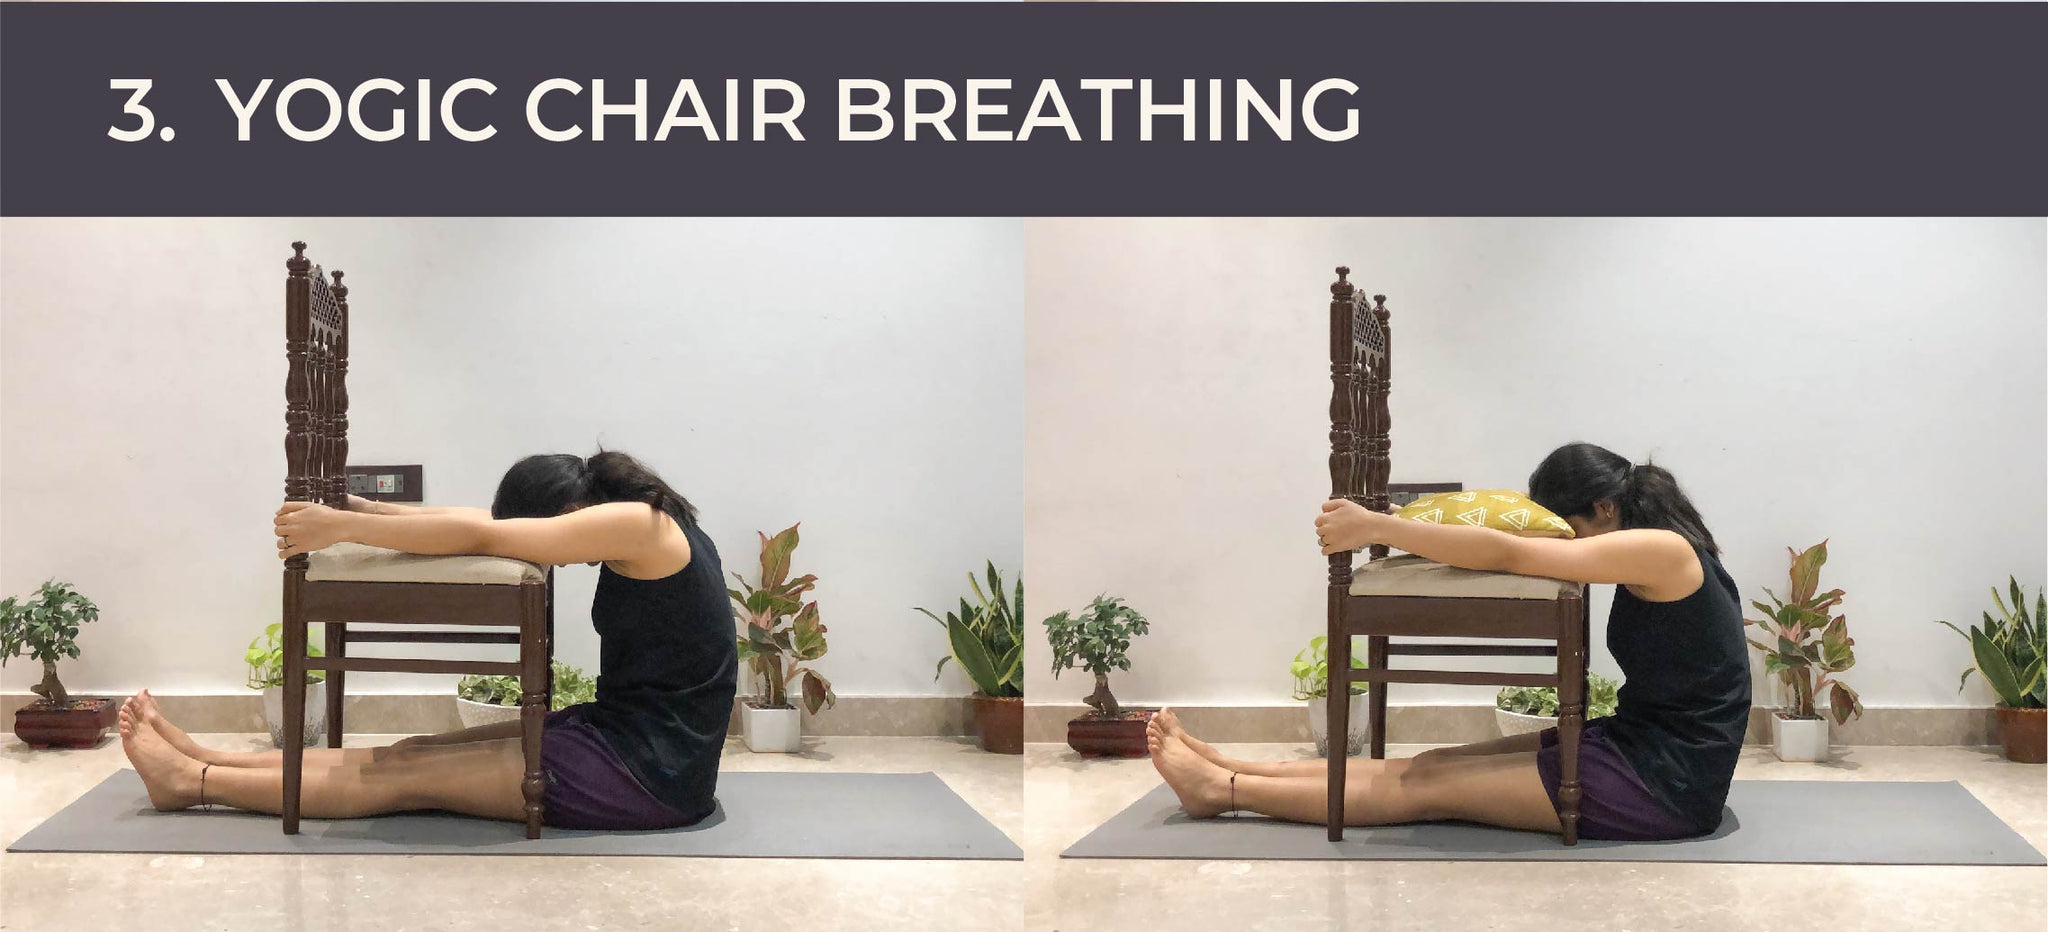 Yogic chair breathing for stress relief